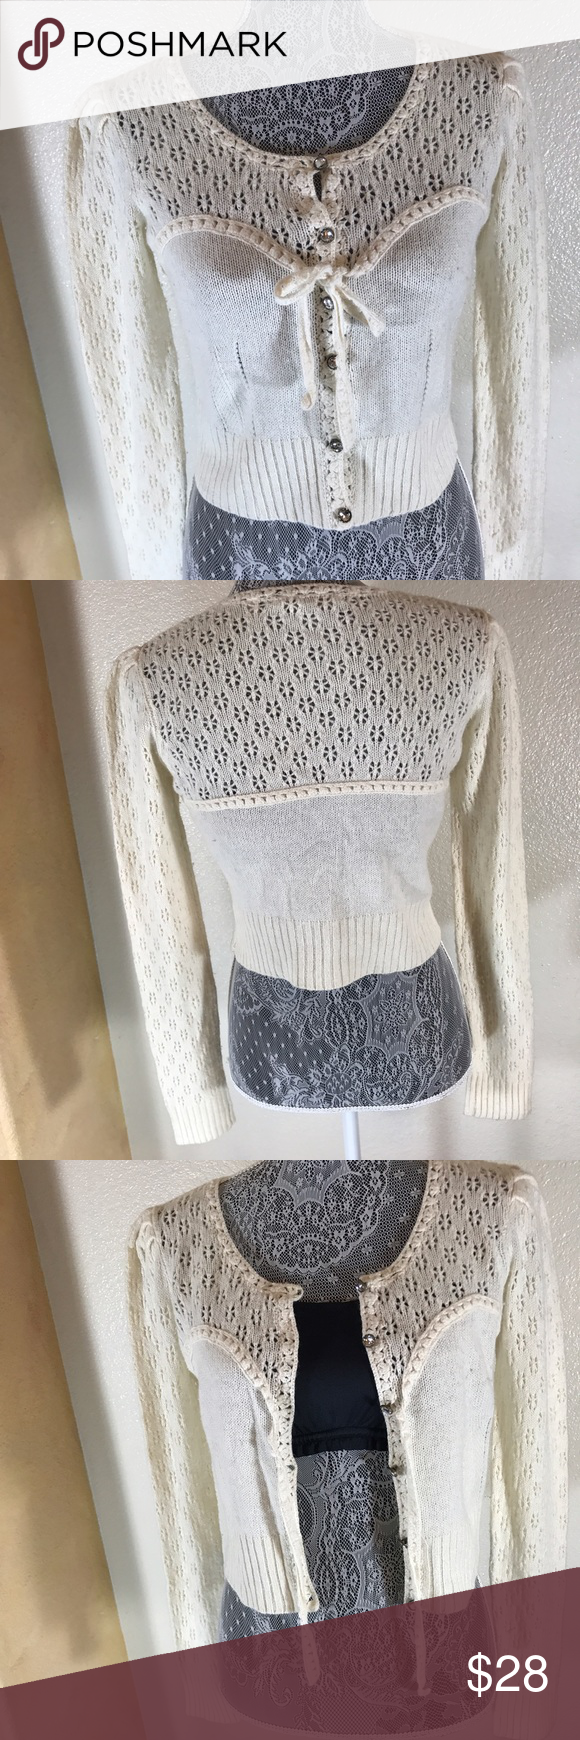 "Anthro ""Knitted & Knotted"" Knit Sweater Top! Anthro ""Knitted & Knotted"" Knit Sweater Top! Anthropologie Tops"